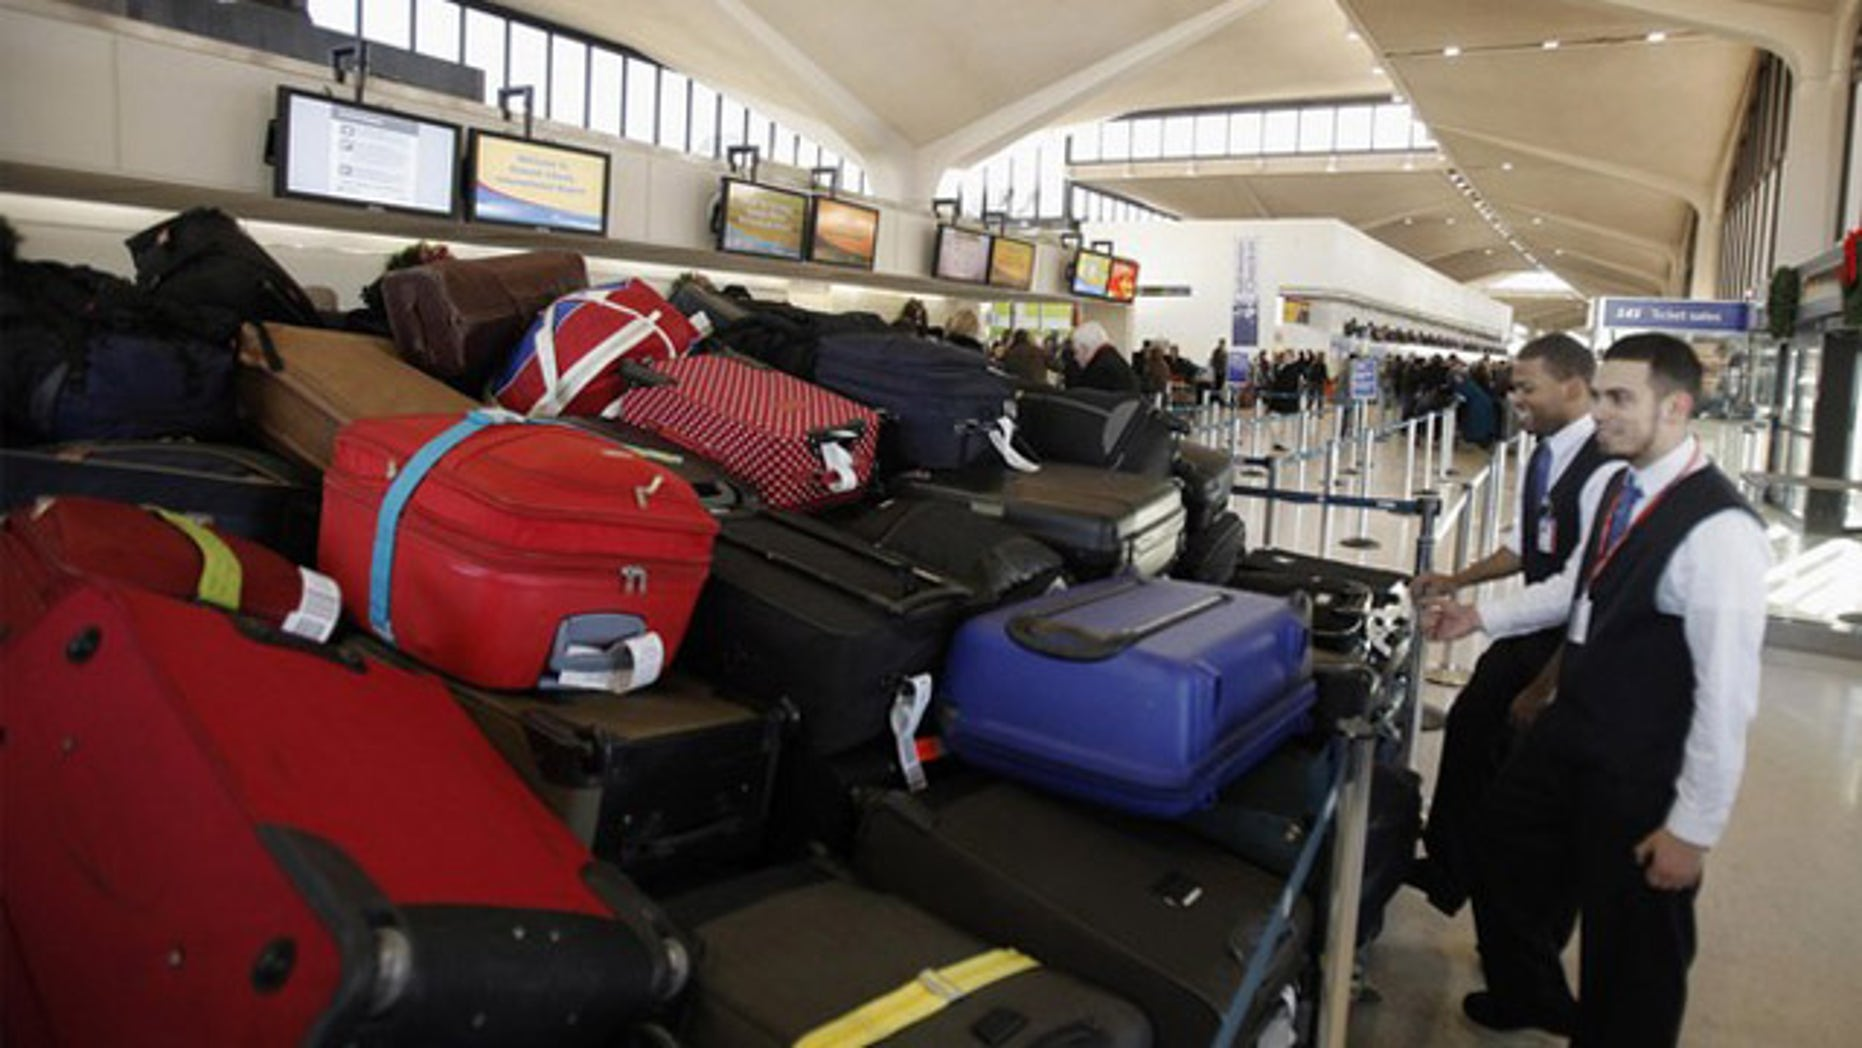 TSA officials reportedly confirmed a string of security lapses at Newark Liberty International Airport within the past month, the Star-Ledger reports (AP).